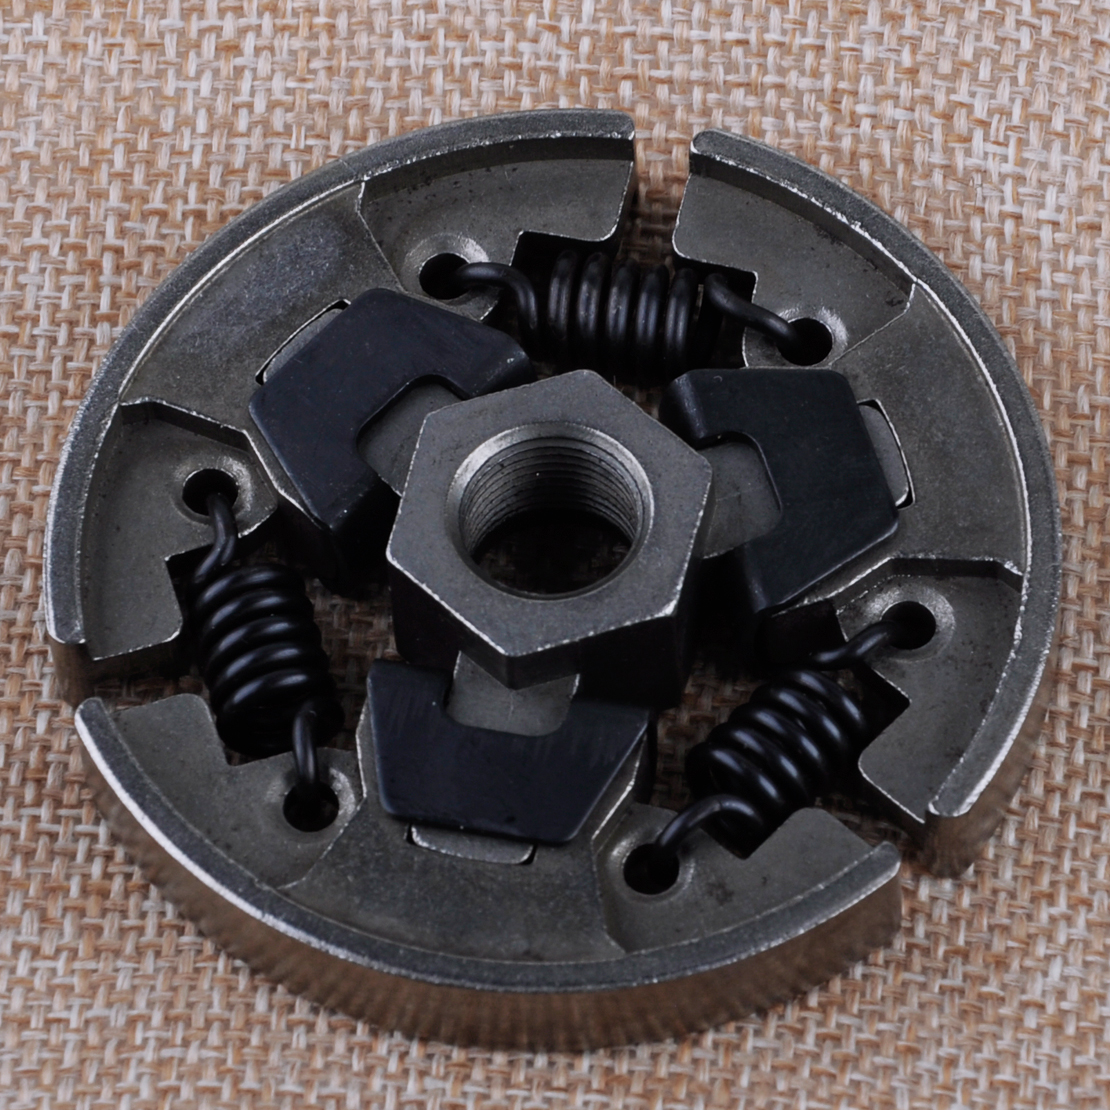 LETAOSK Clutch Assy Fit For Stihl 017 018 021 023 025 MS170 MS180 MS210 MS230 MS250 Chainsaw